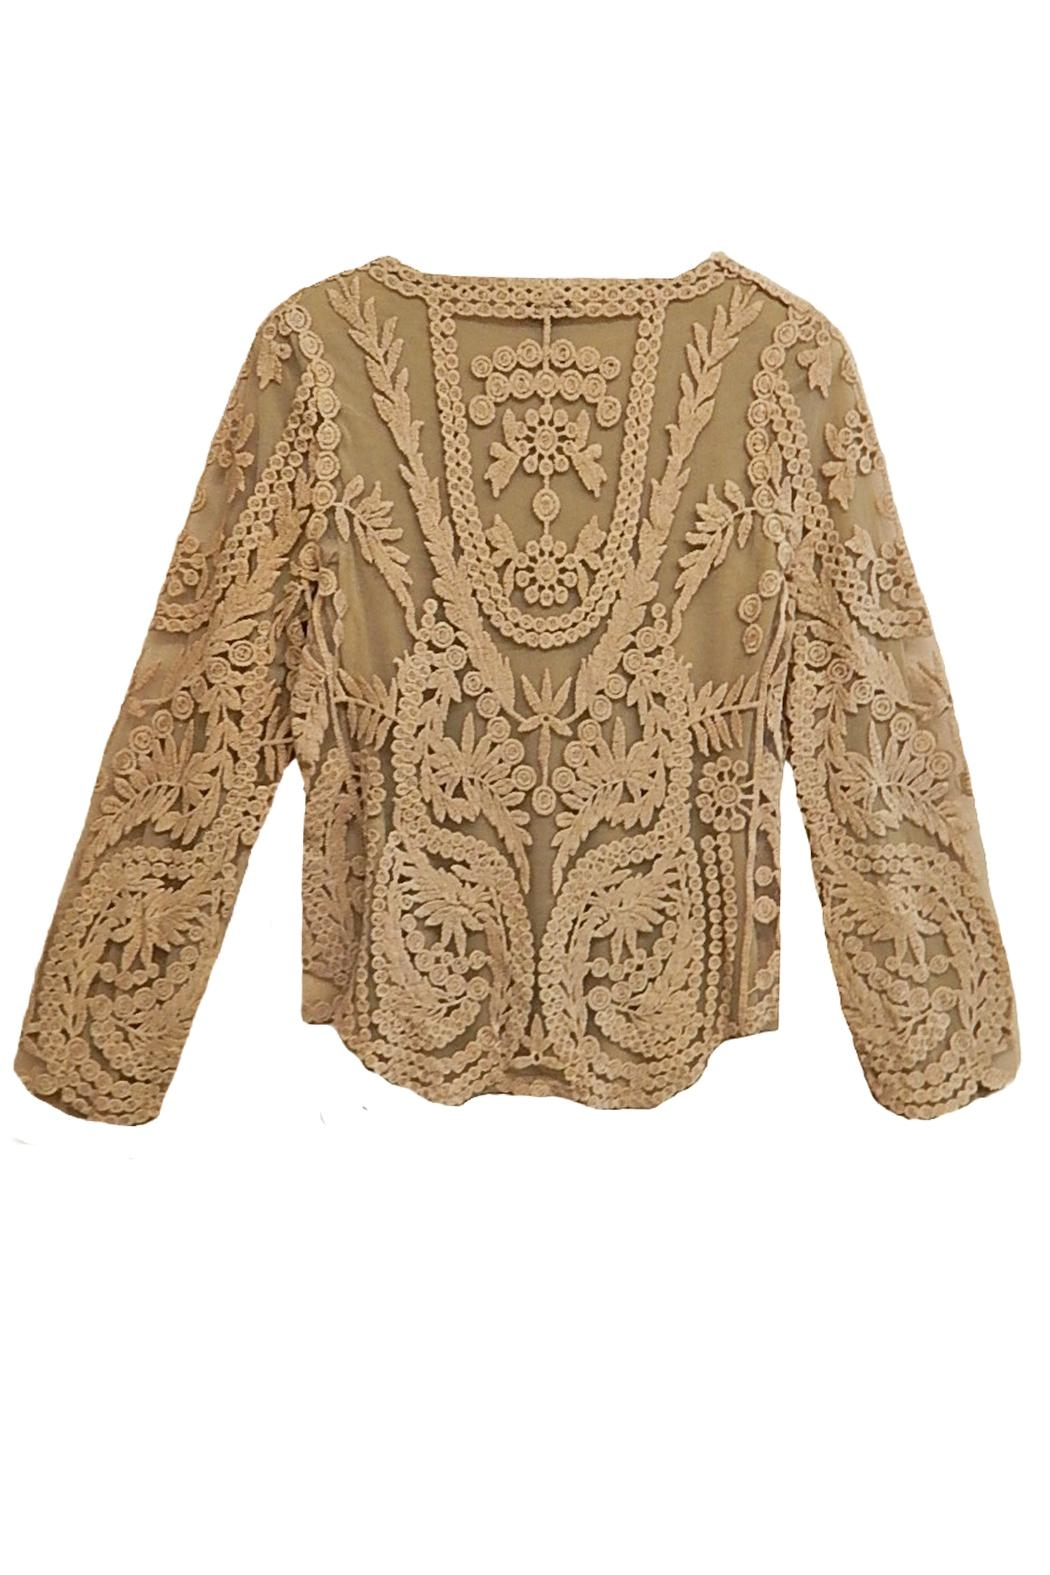 AZI Tan Lace Top - Front Full Image